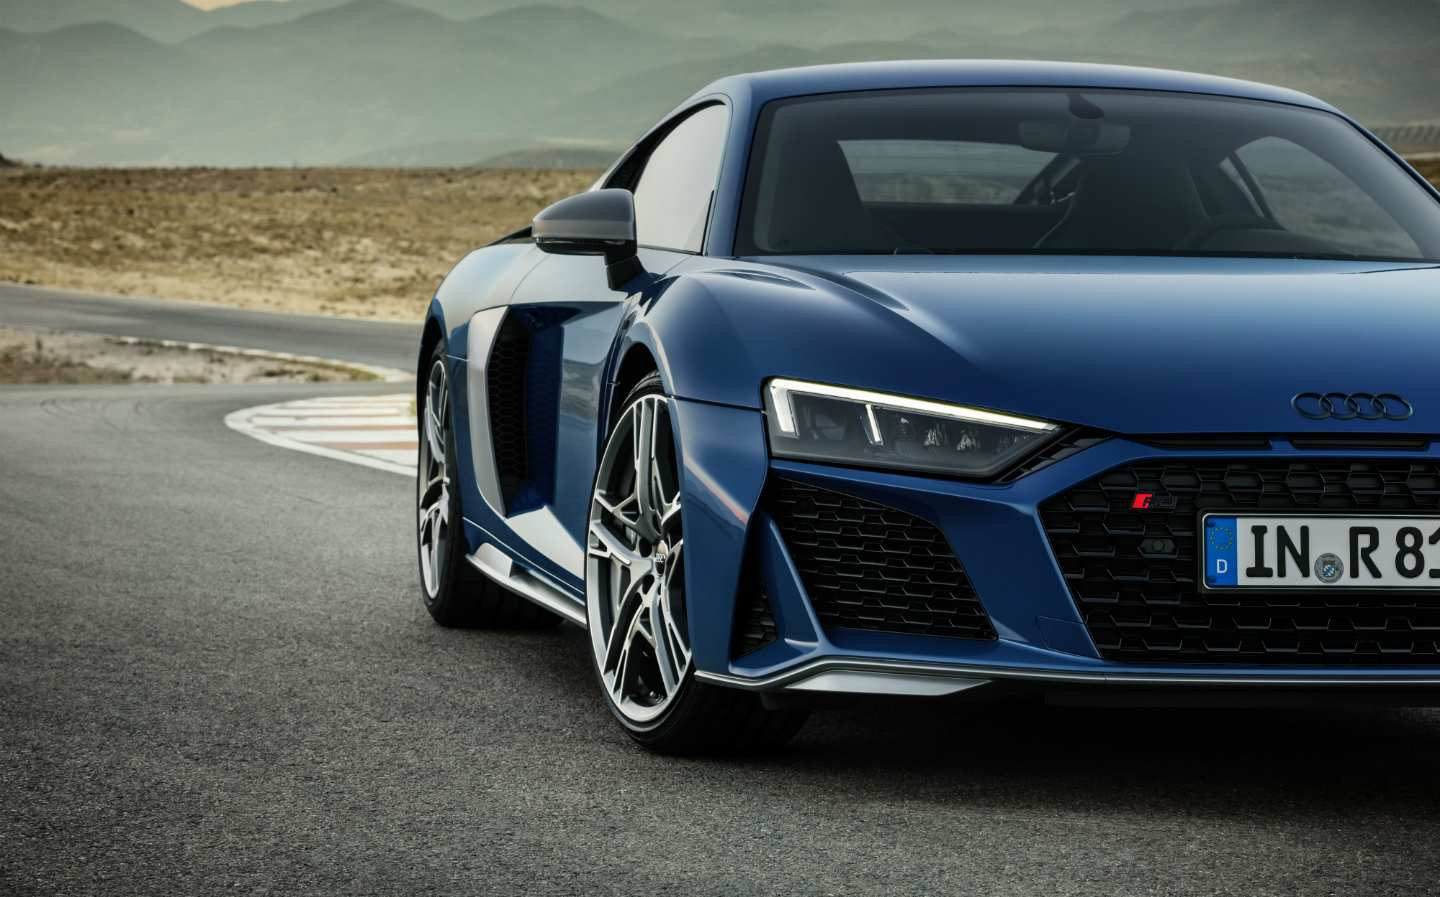 61 New The R8 Audi 2019 Review And Price Engine